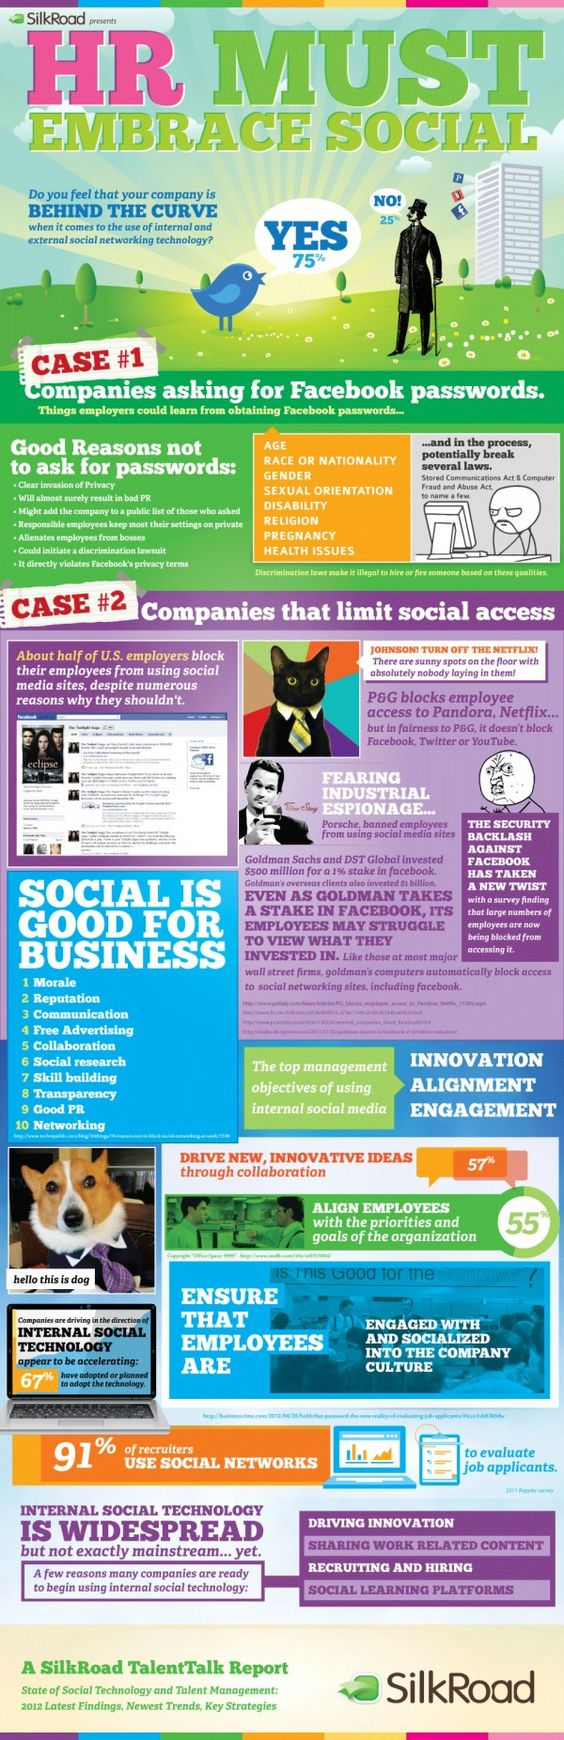 Why HR Must Embrace Social Media